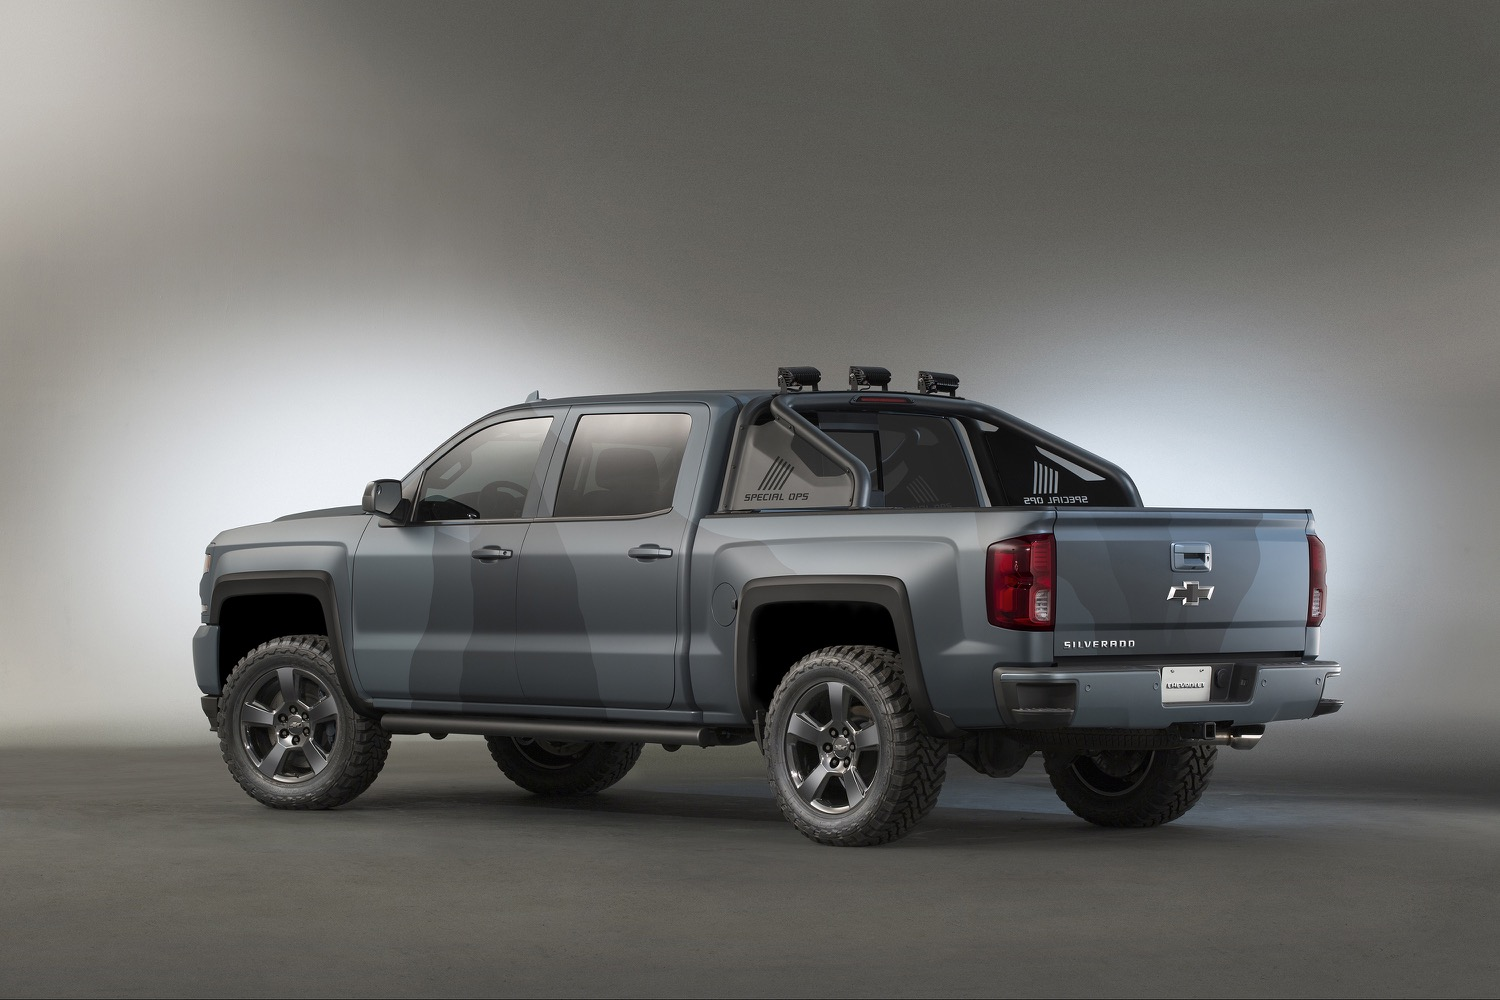 chevrolet silverado special operations the special ops is based on a 2016 silverado 1500